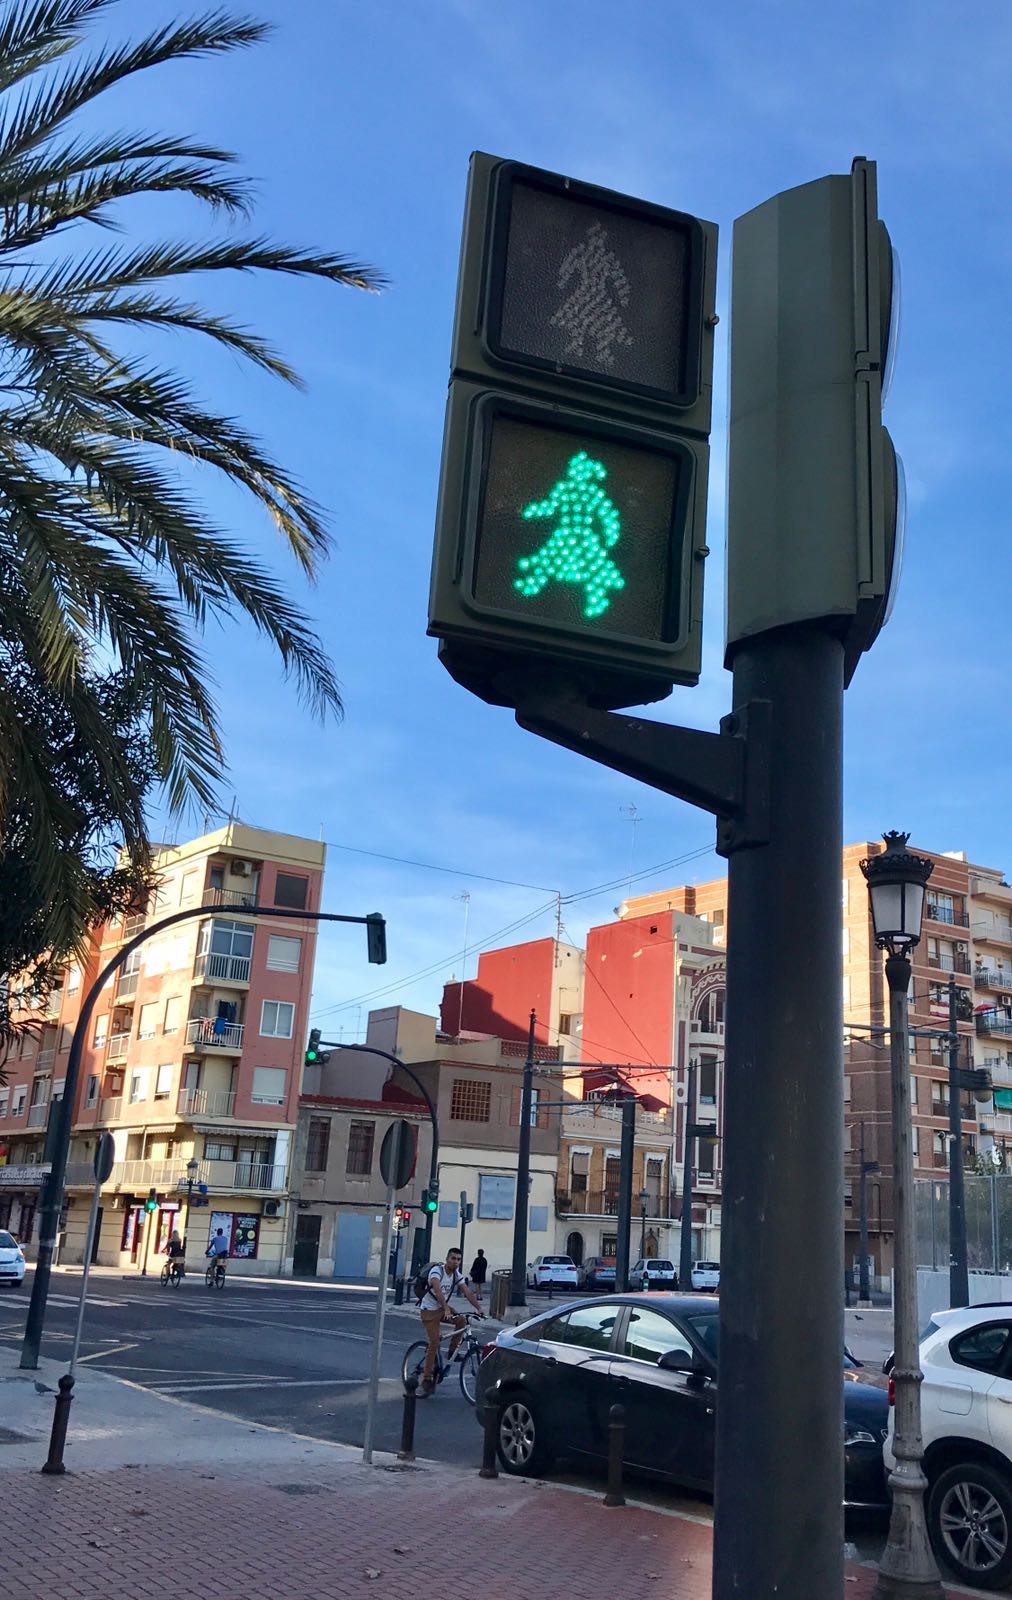 Traffic light on green with the symbol to walk being a woman